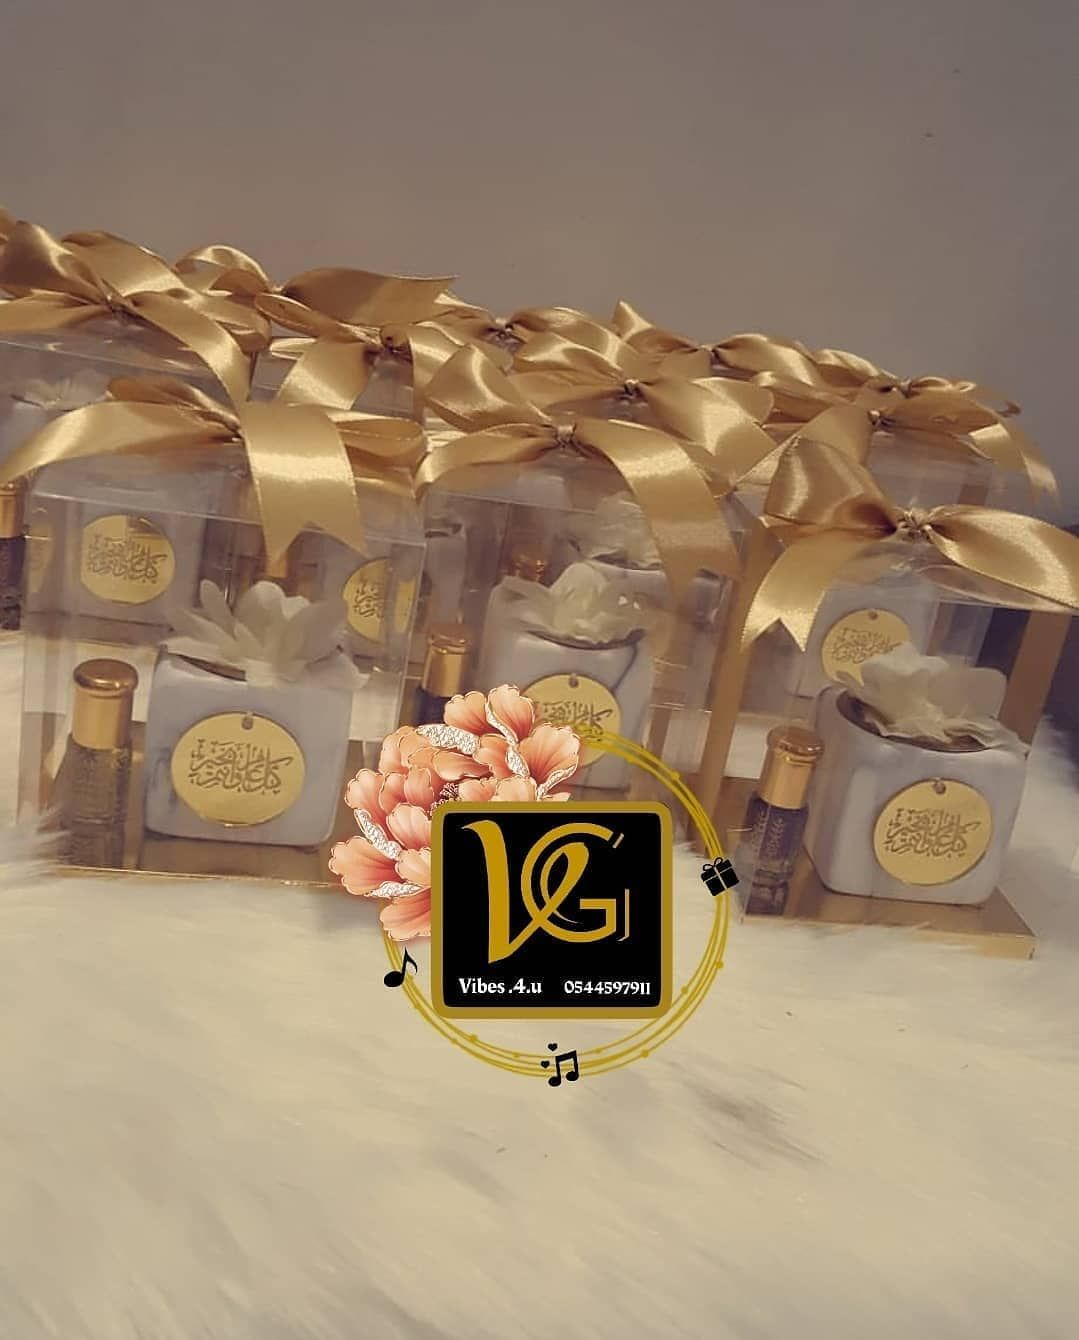 Pin By Youssreya Soliman On استقبال Handmade Gift Tags Gift Tags Gifts